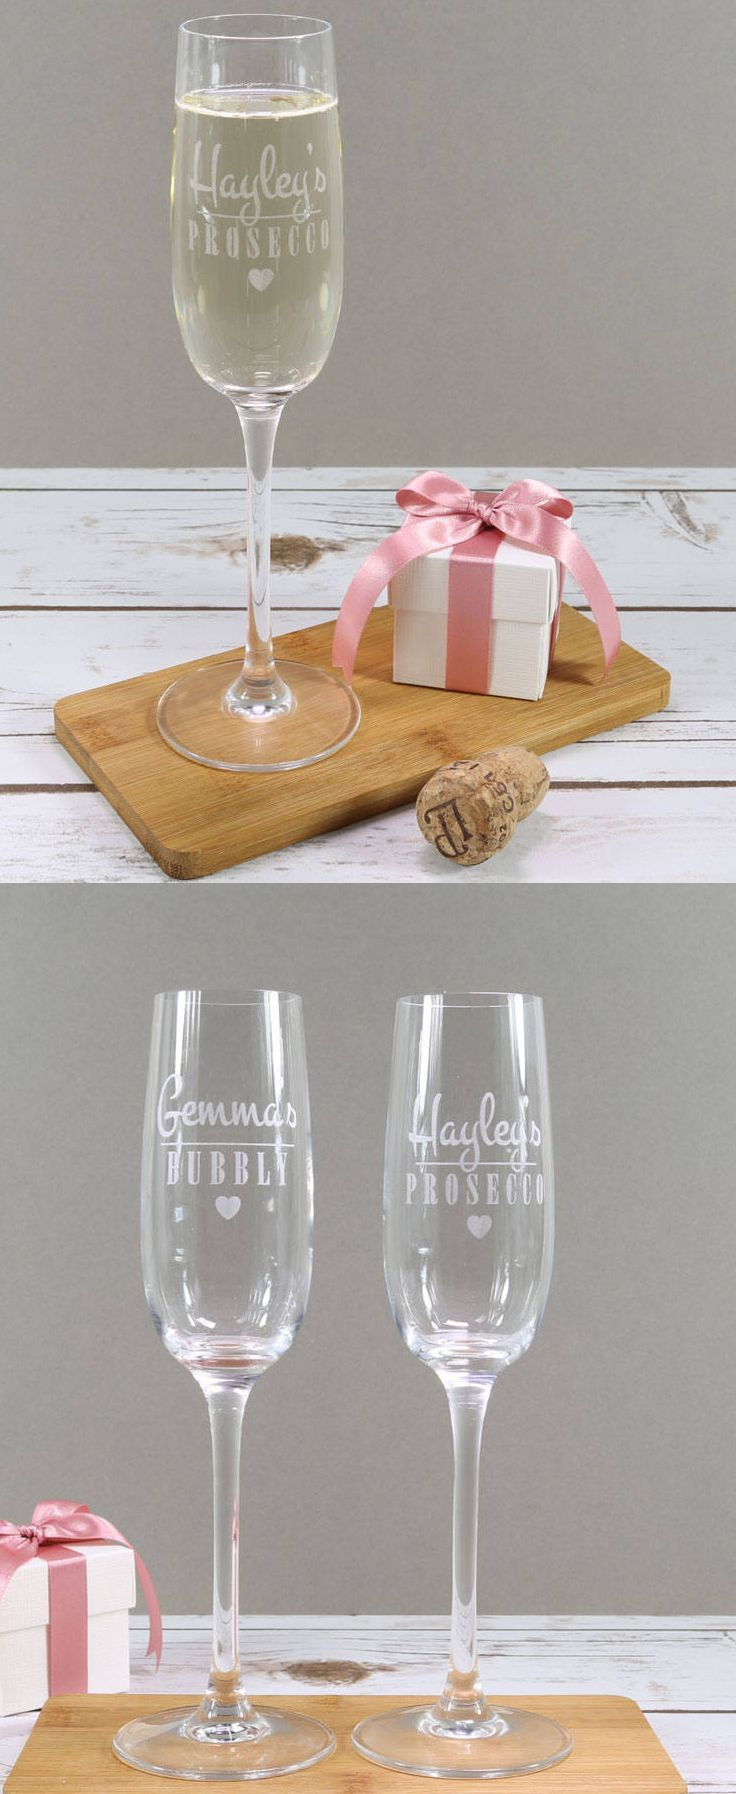 Personalised Bridesmaids Gifts £8.50. Prosecco glass etched with your name of choice. Perfect for champagne or prosecco lovers! Or buy a pair for that special couple or for a Valentine's or christmas gift? The glass can also be made with the words Bubbly, Champagne or Champers. Wedding Gifts. Christmas Presents Gift Ideas Inspiration. #wedding #giftsforher #christmaspresents #giftinspiration #bridesmaid #affiliatelink #custommade #personalised